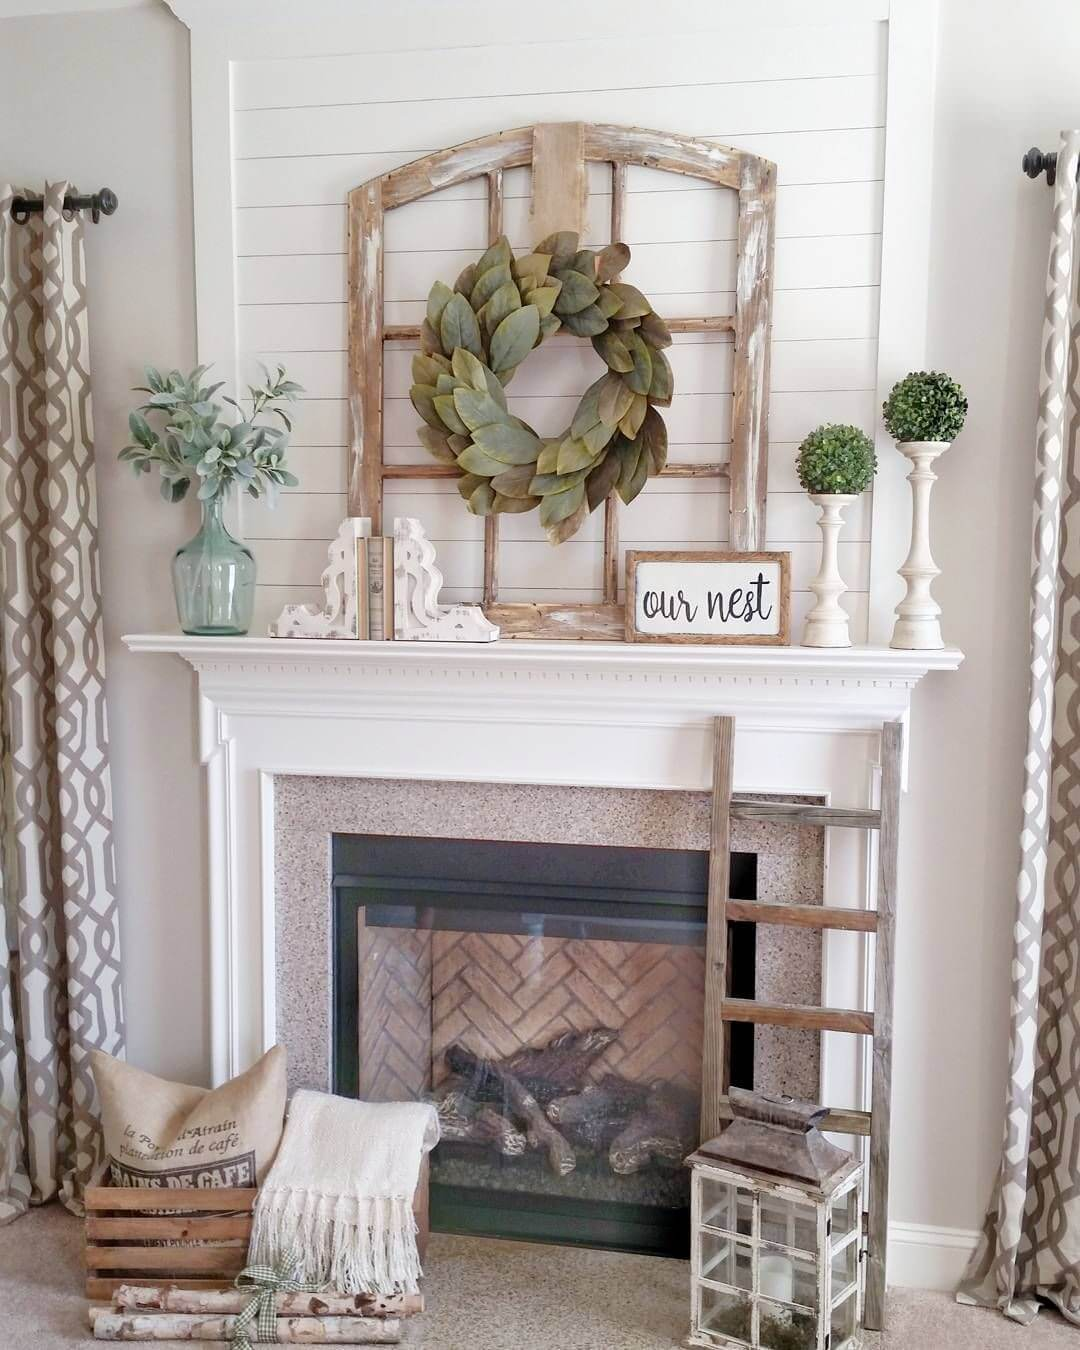 33 Best Rustic Living Room Wall Decor Ideas and Designs ... on Decorative Wall Sconces For Living Room Ideas id=40758